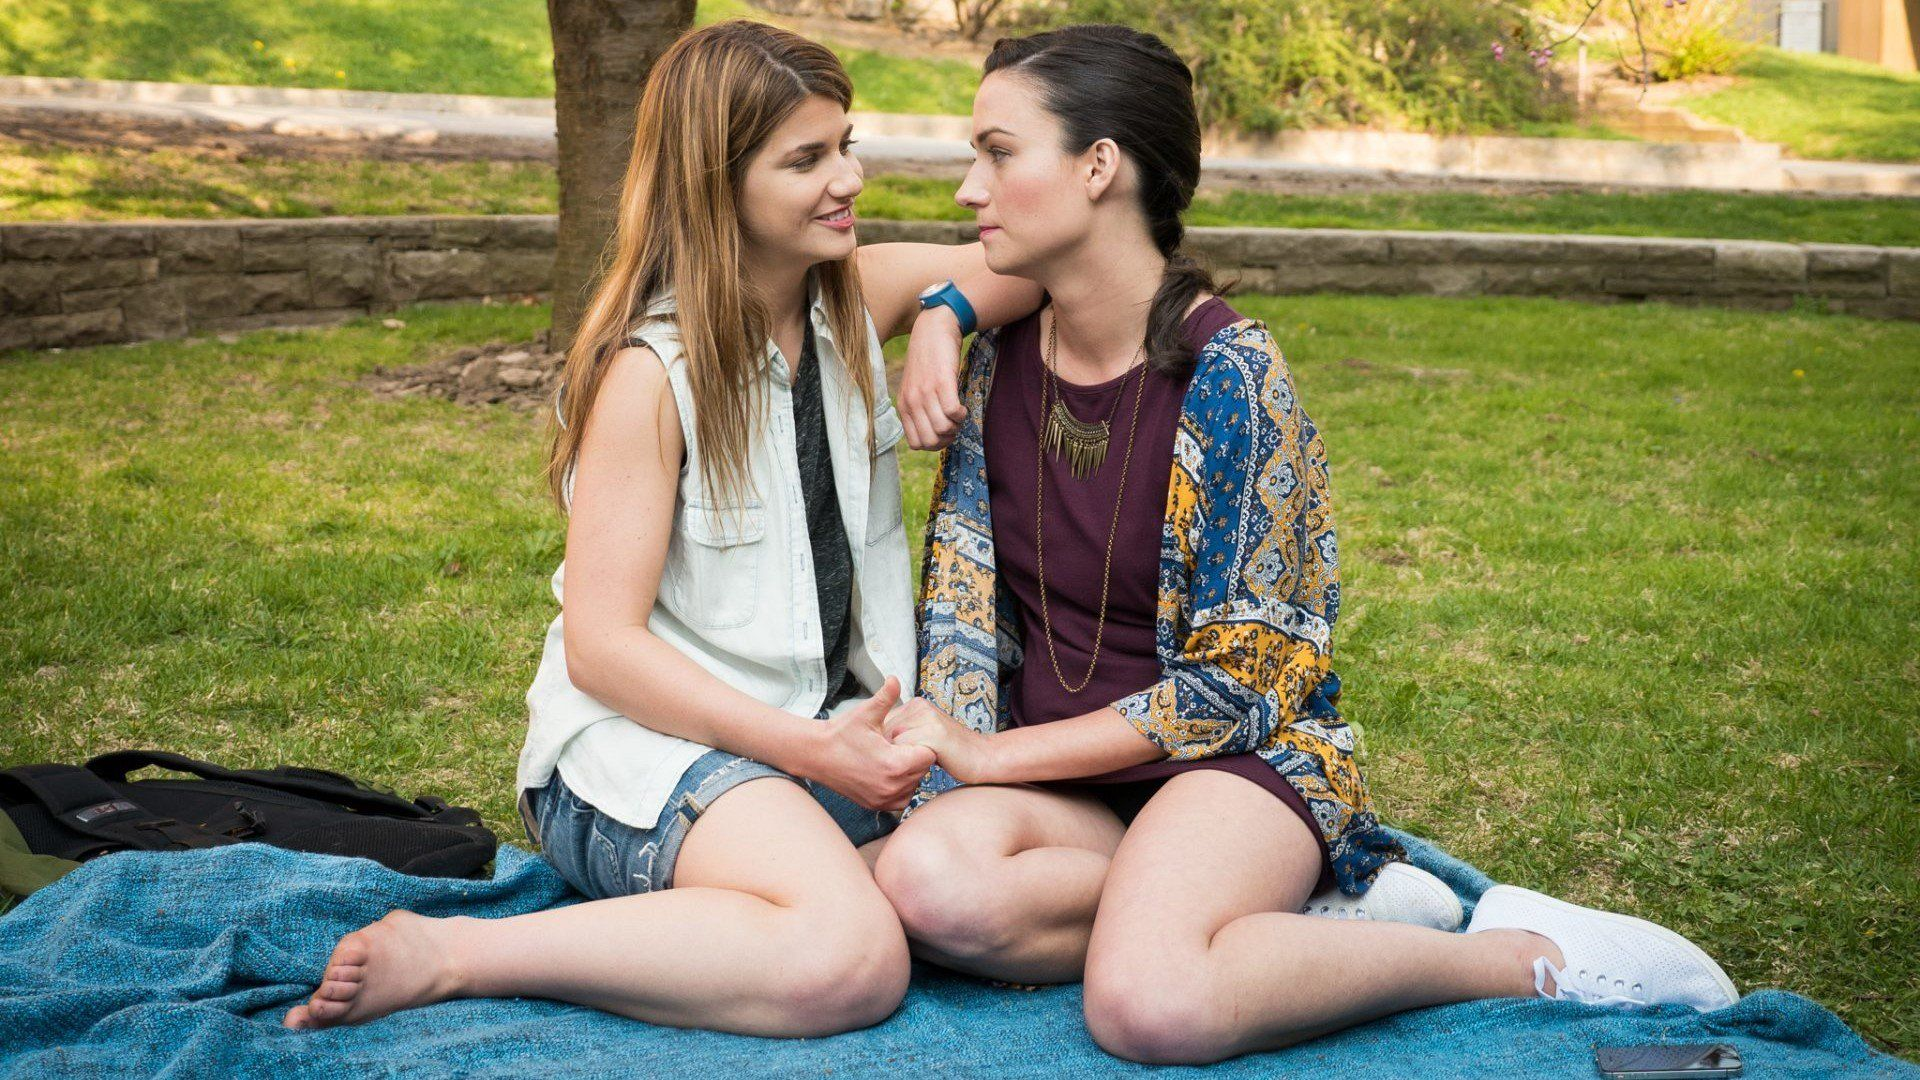 free lesbian only sex video